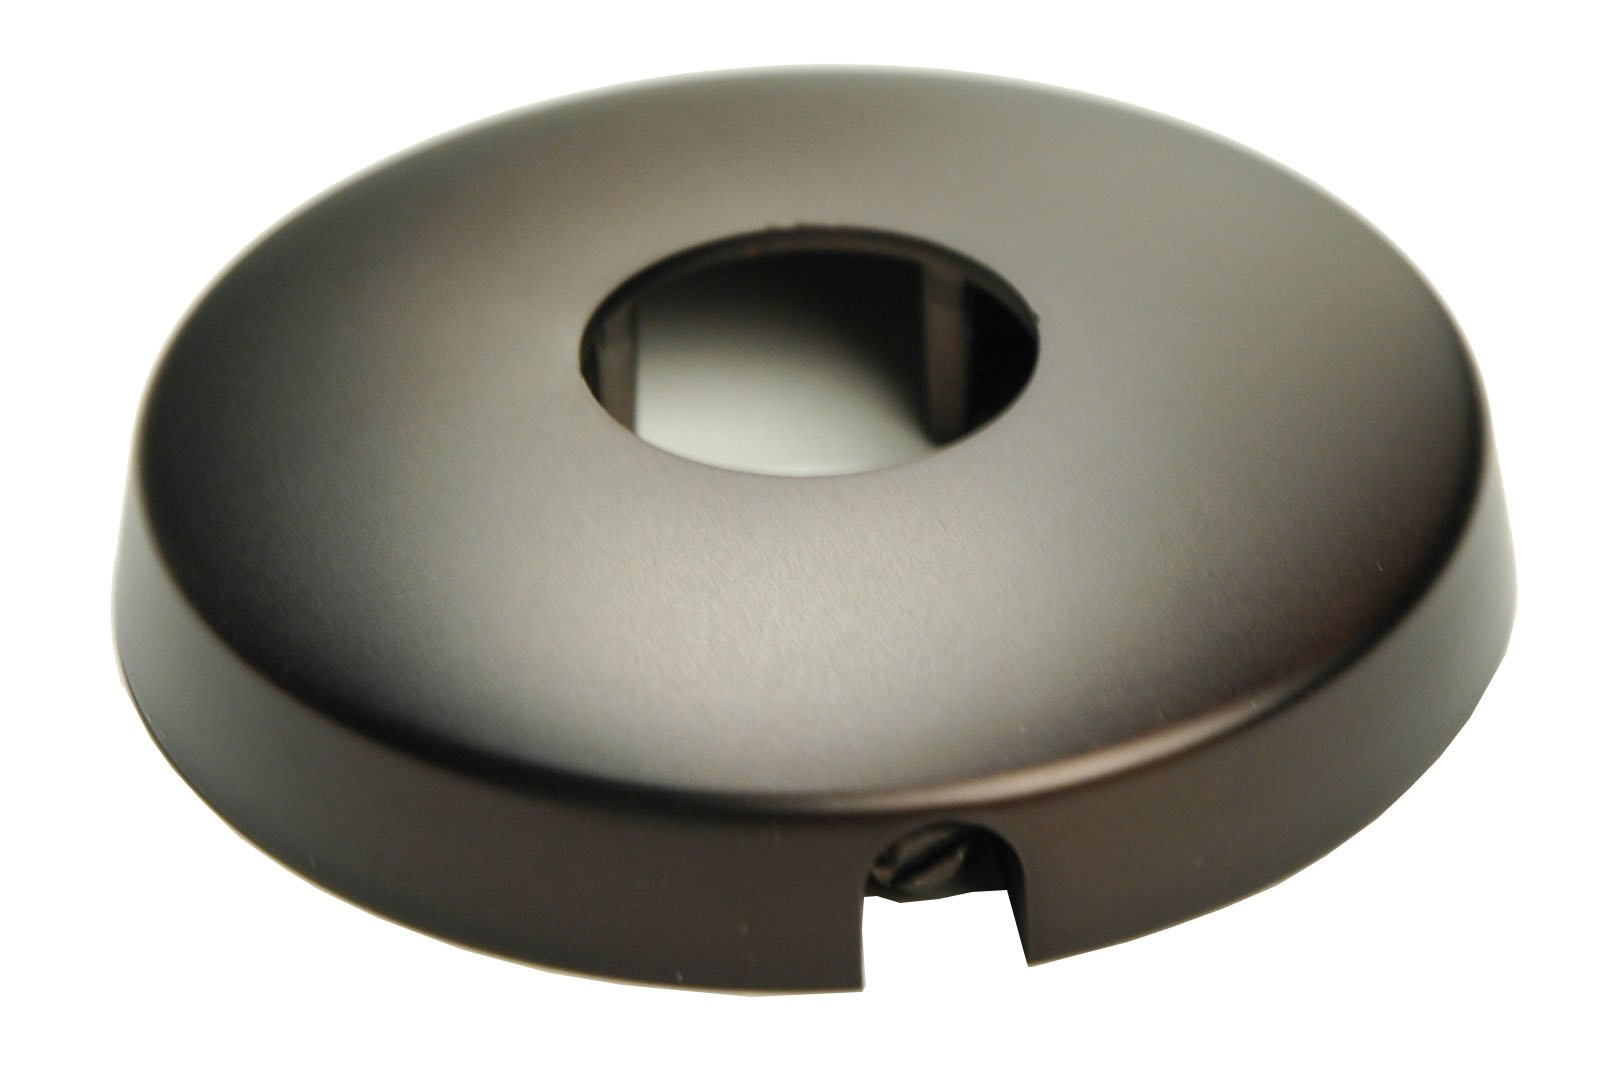 Shower Arm Flange, Oil Rubbed Bronze Finish - by Plumb USA